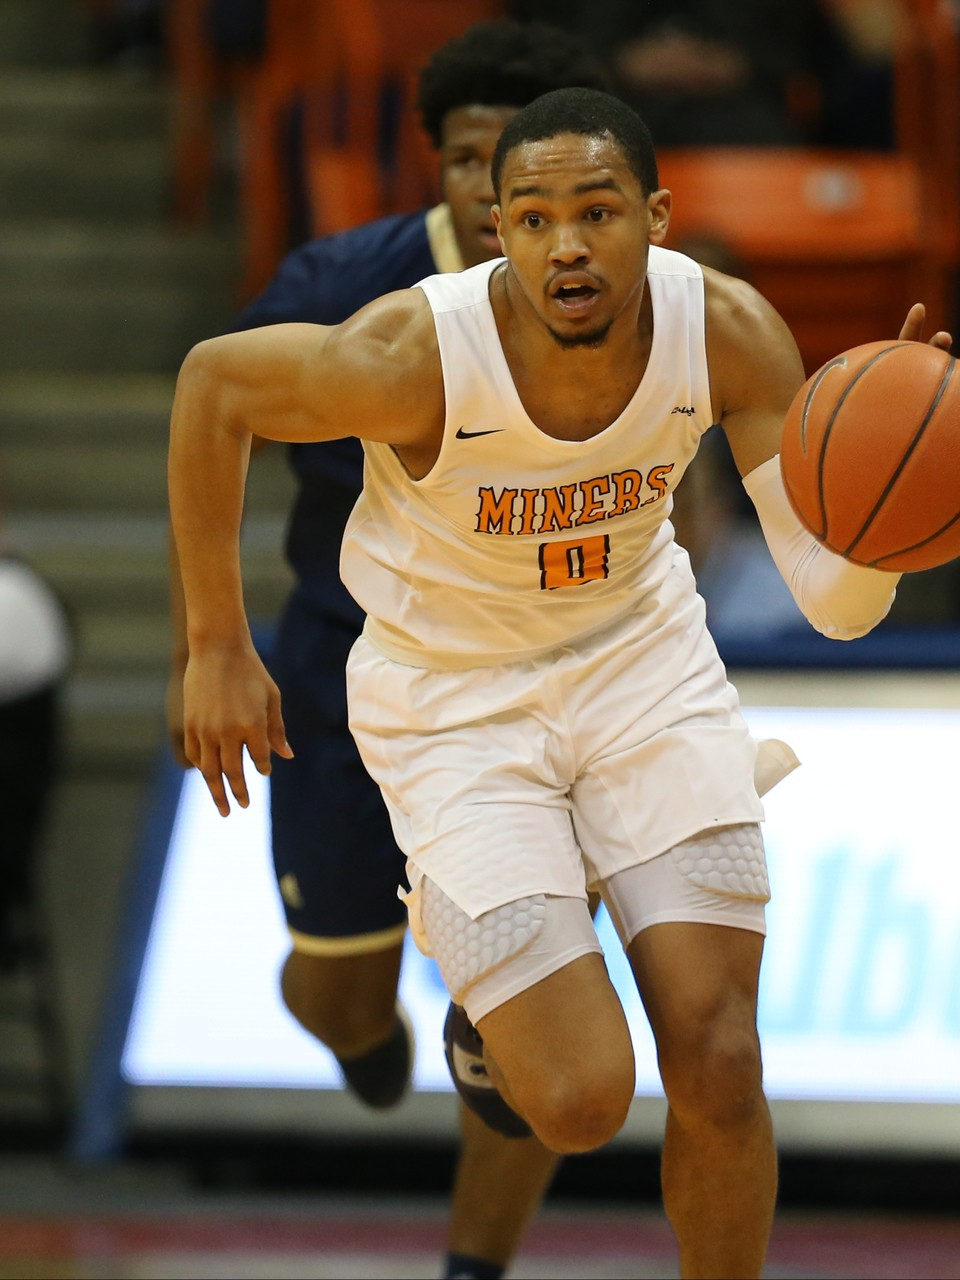 Utep Miners To Host Rice Feb 23 Middle Tennessee March 6 In C Usa Bonus Play Discou Kfox